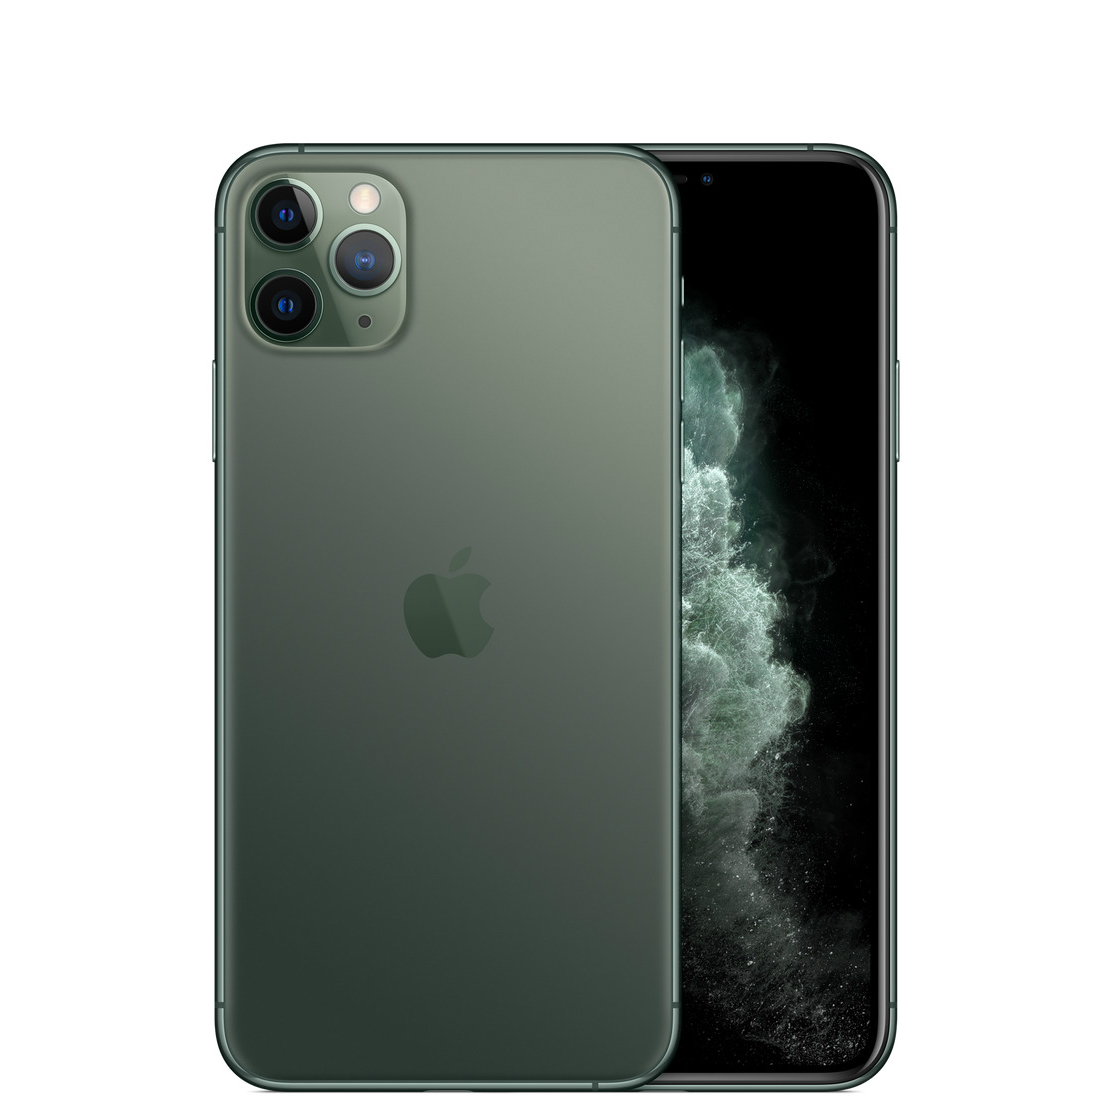 Image of Apple iPhone 11 Pro Max 256GB A2220 Dual Sim with Tempered Glass Screen Protector - Midnight Green